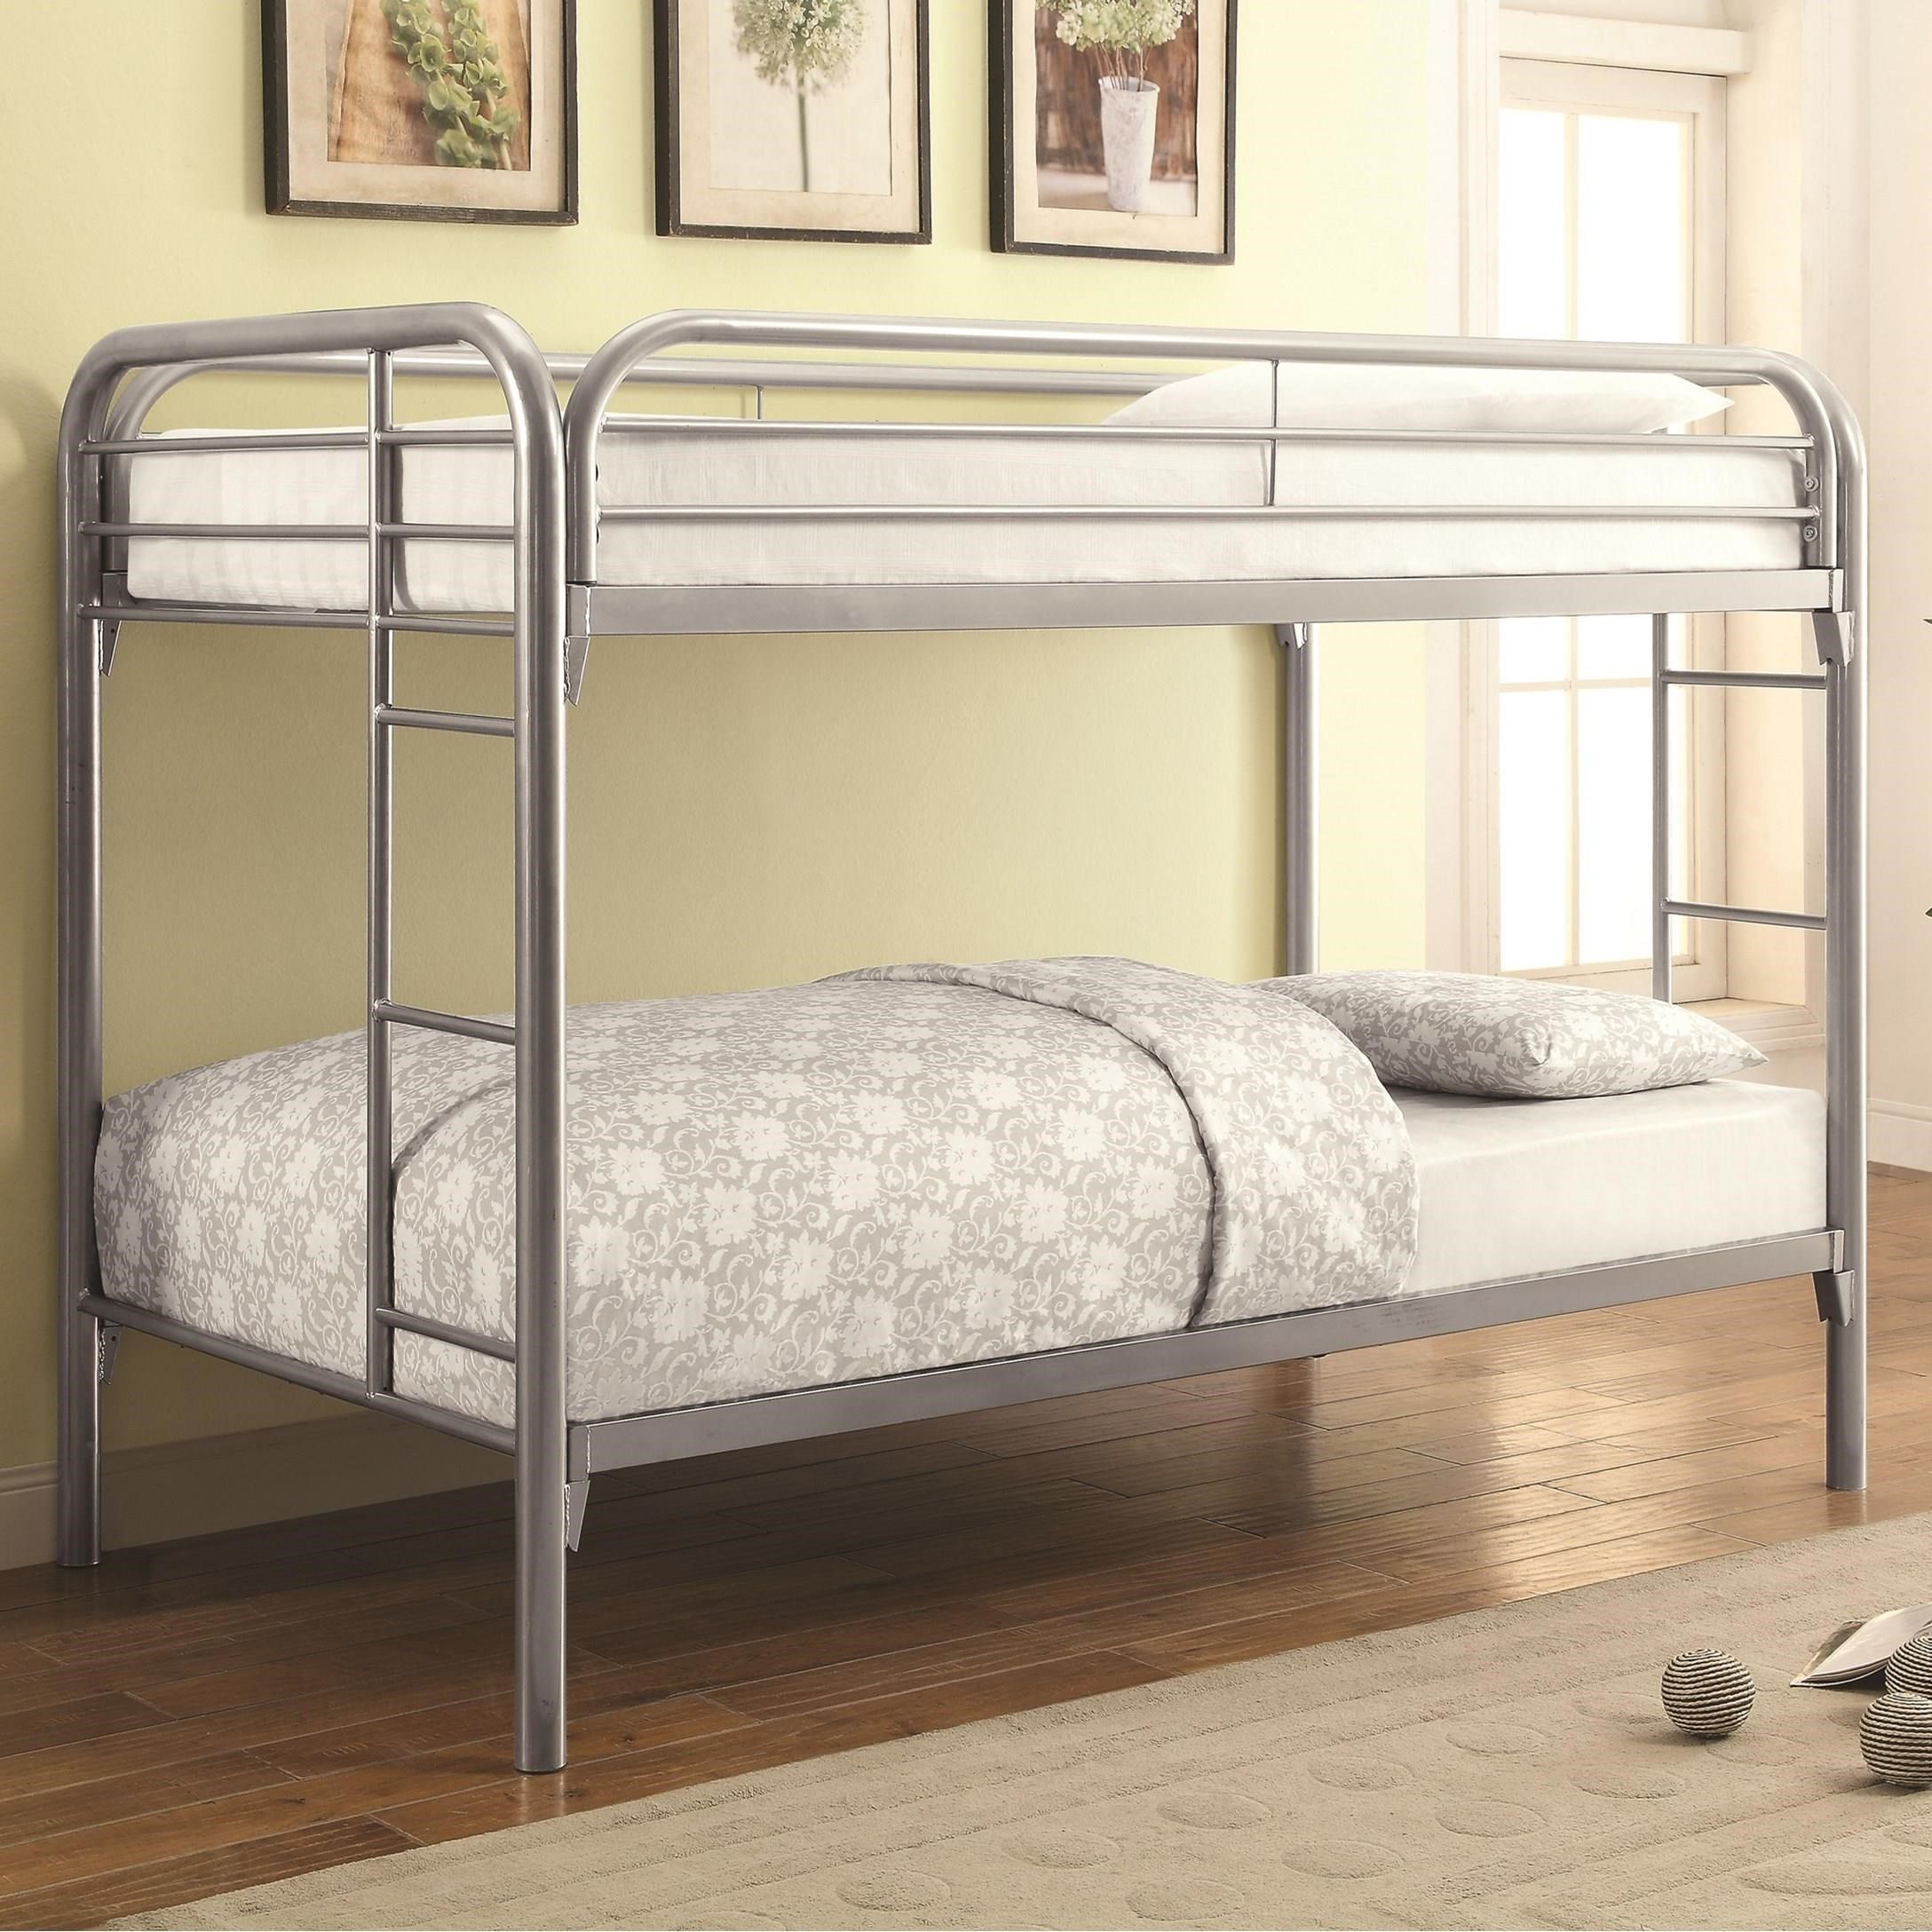 Metal Beds Twin Bunk Bed by Coaster at Standard Furniture